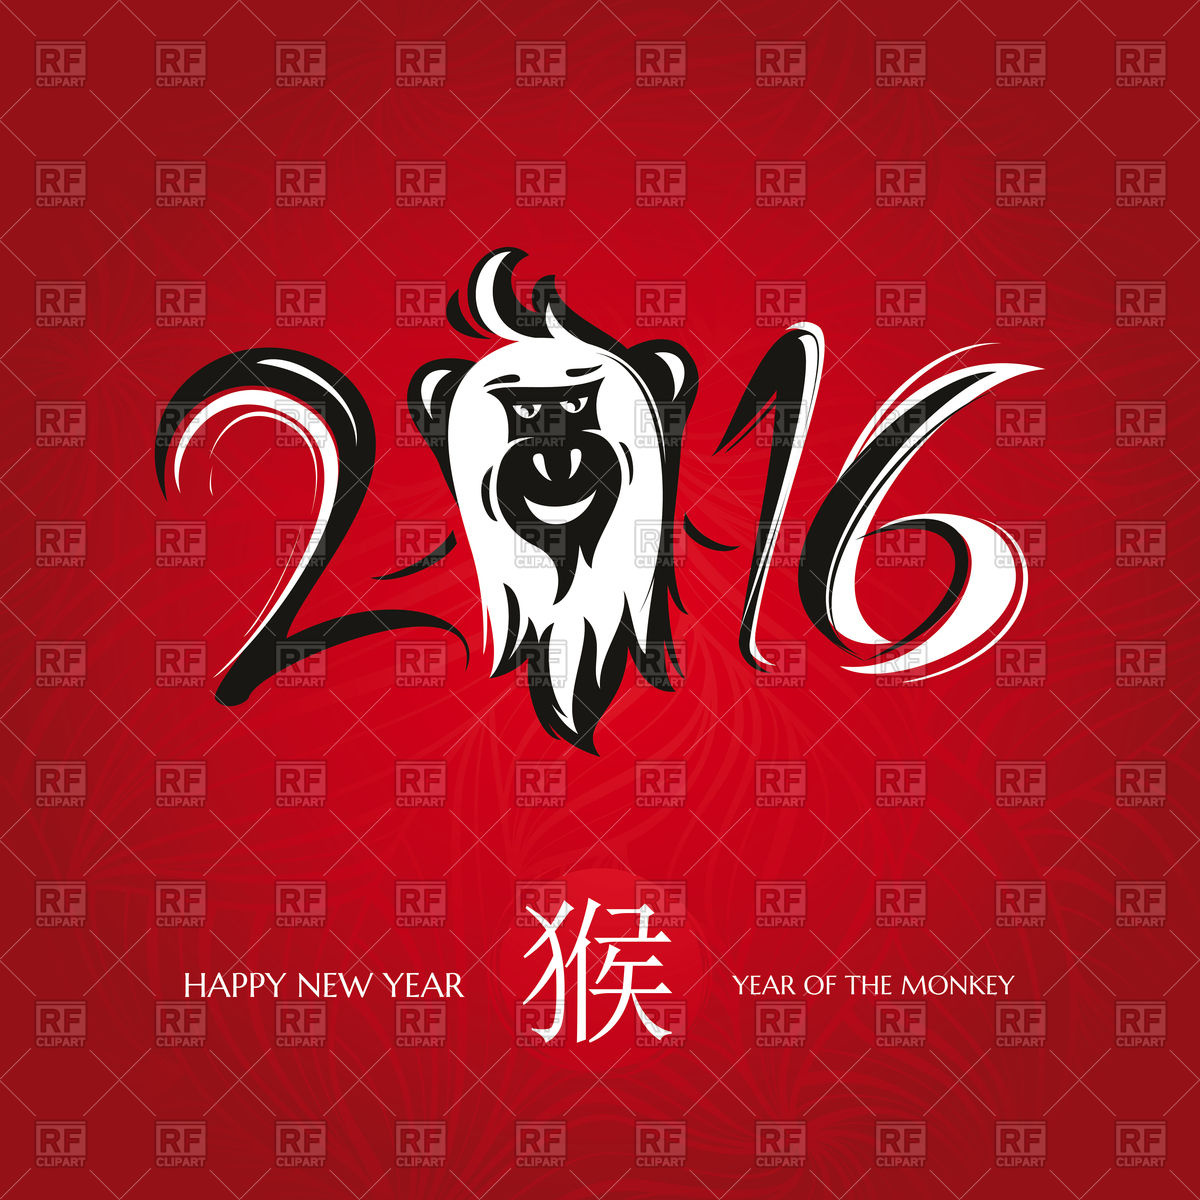 Free clipart for new year blessings.